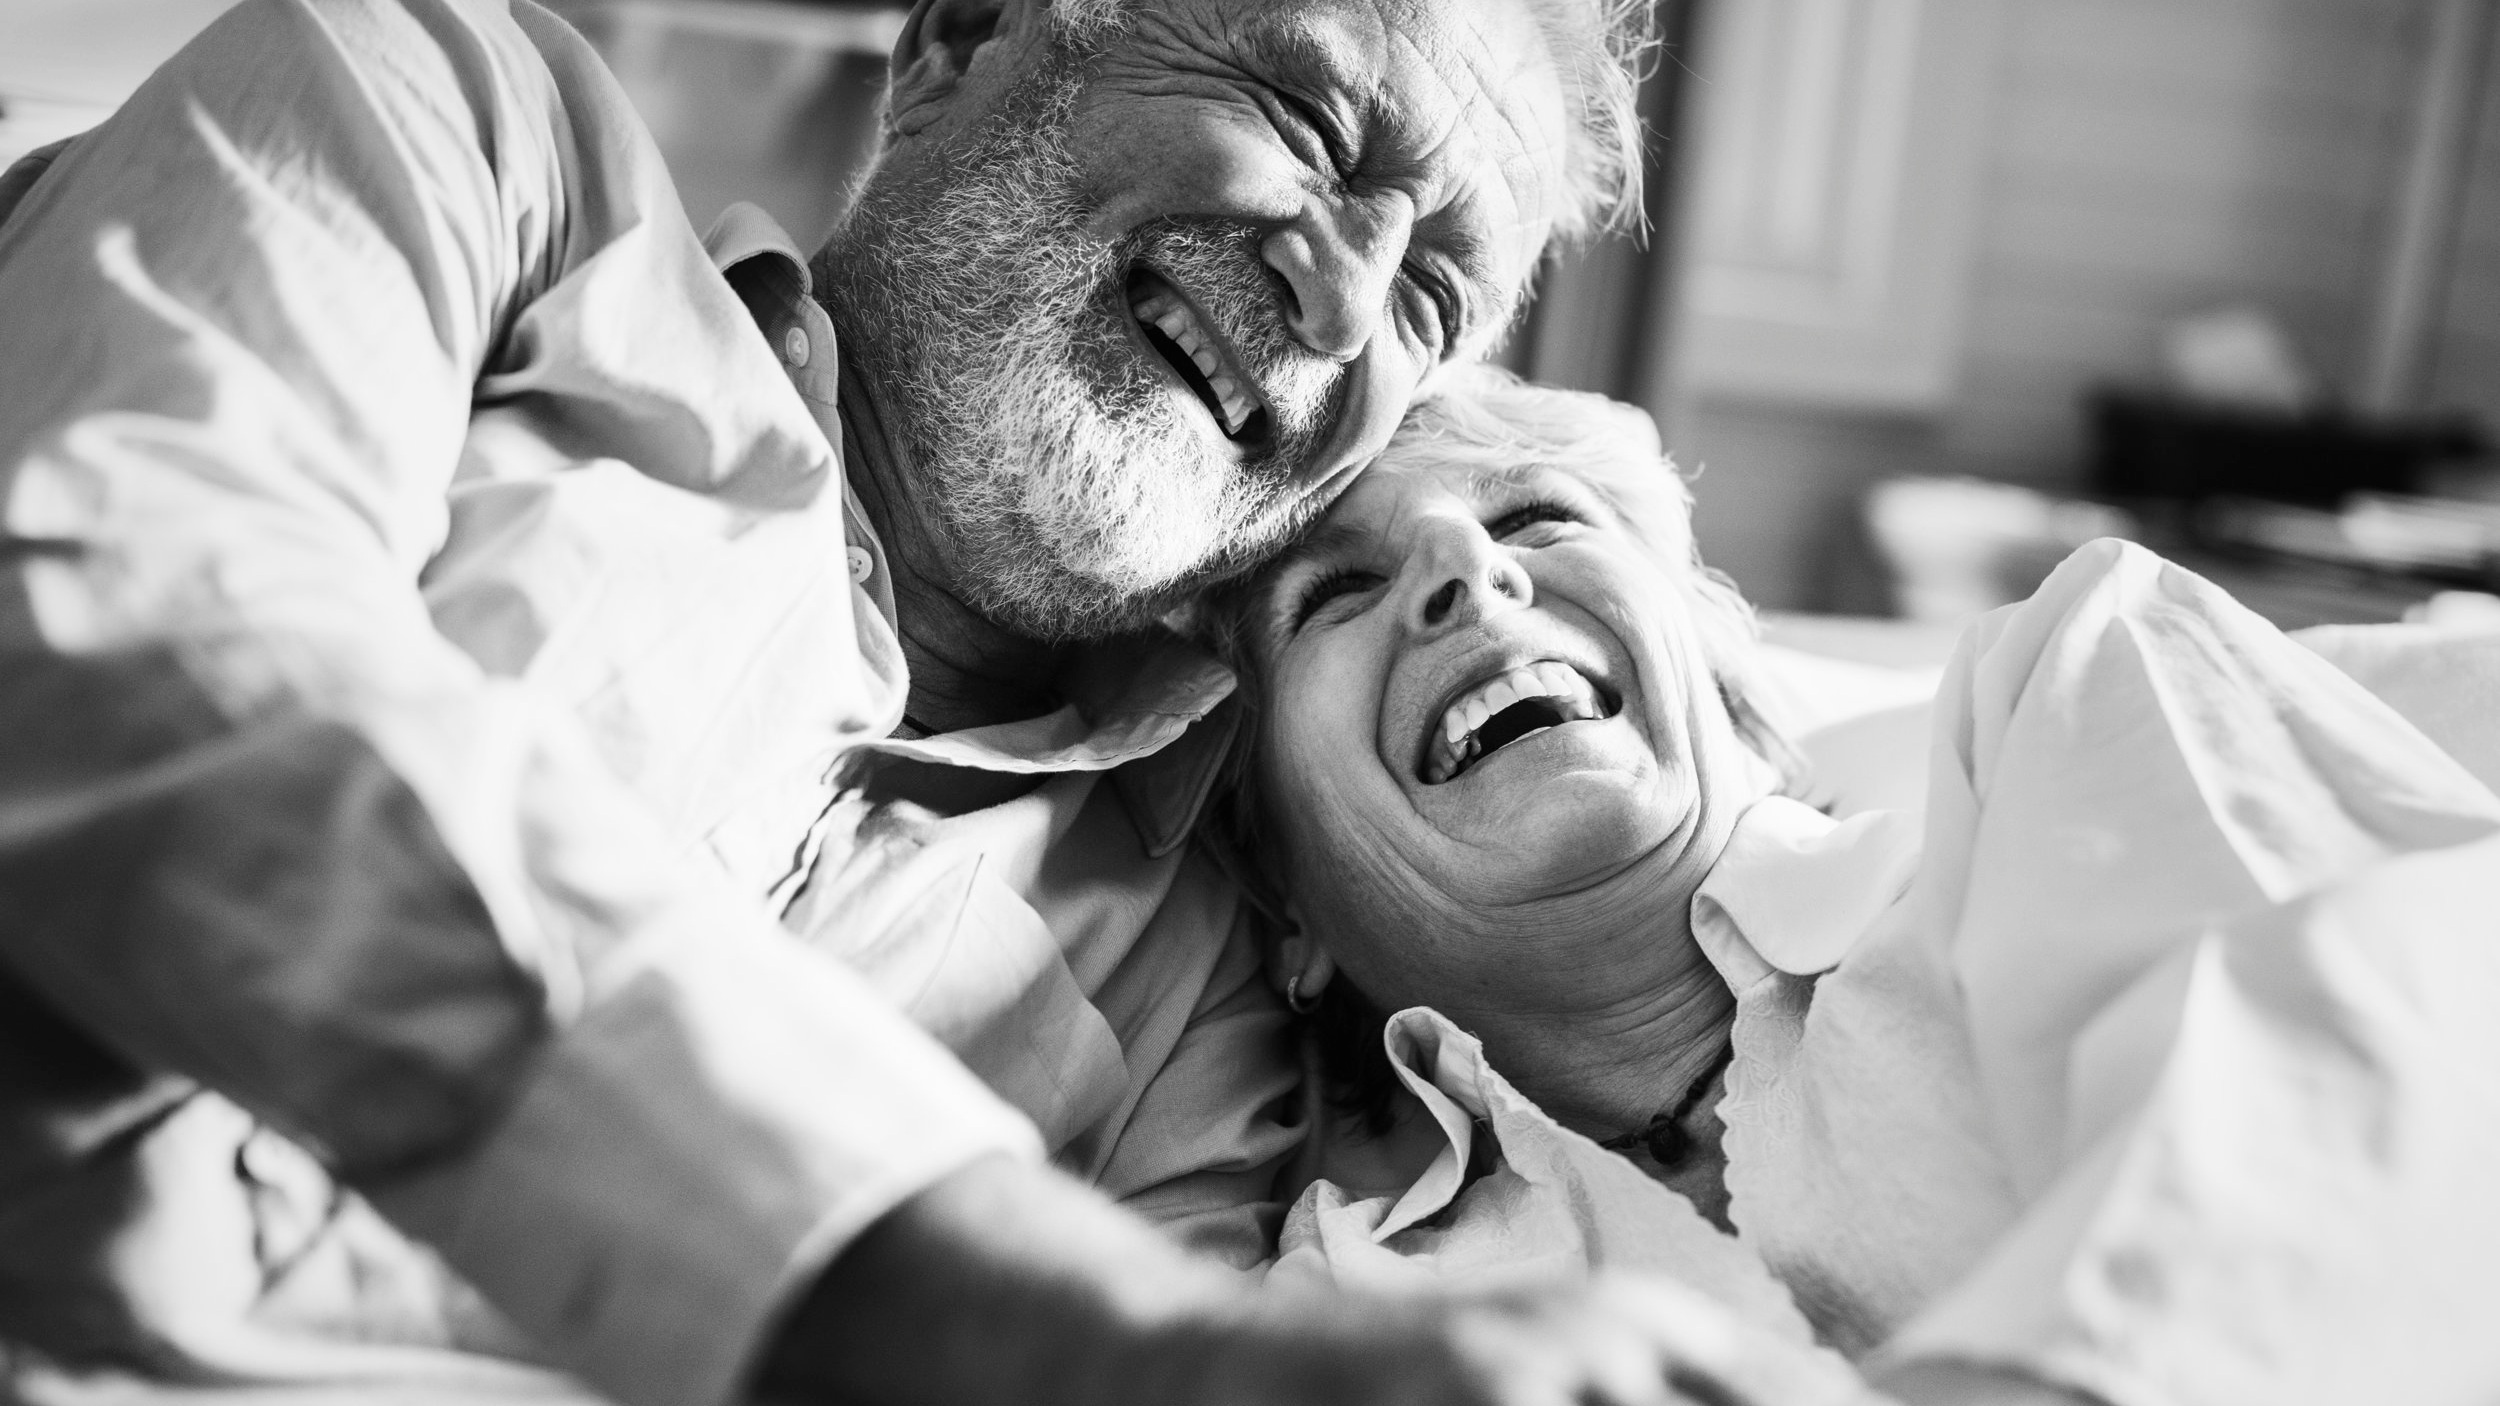 Memory Care - Memory care is a distinct form of long-term care designed to meet the specific needs of a person with Alzheimer's disease, dementia or other types of memory problems demanding a unique sensitivity to care.